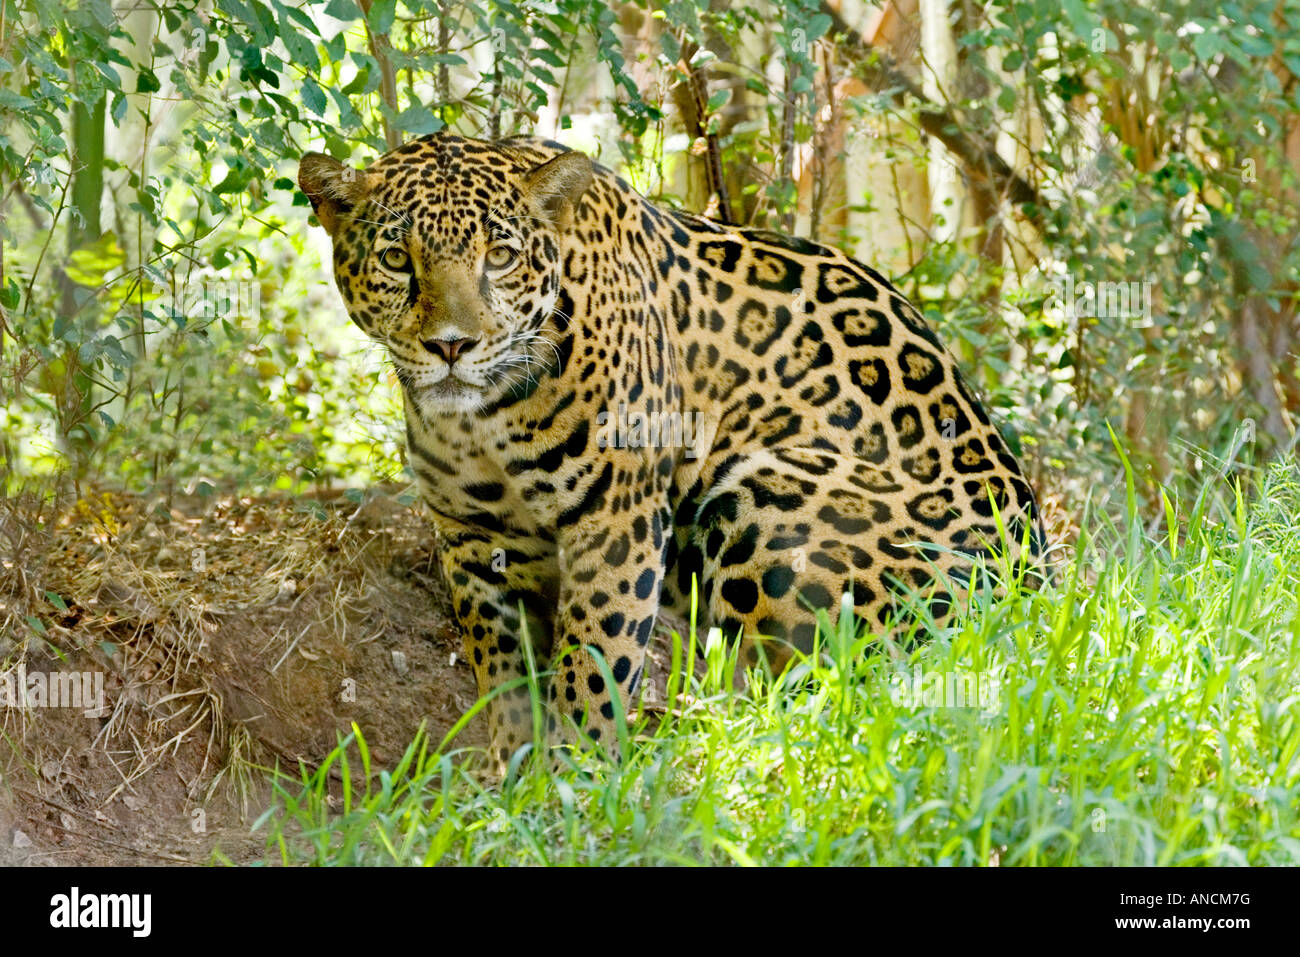 Jaguar San Antonio >> Jaguar Panthera Onca San Antonio Zoo Texas United States 26